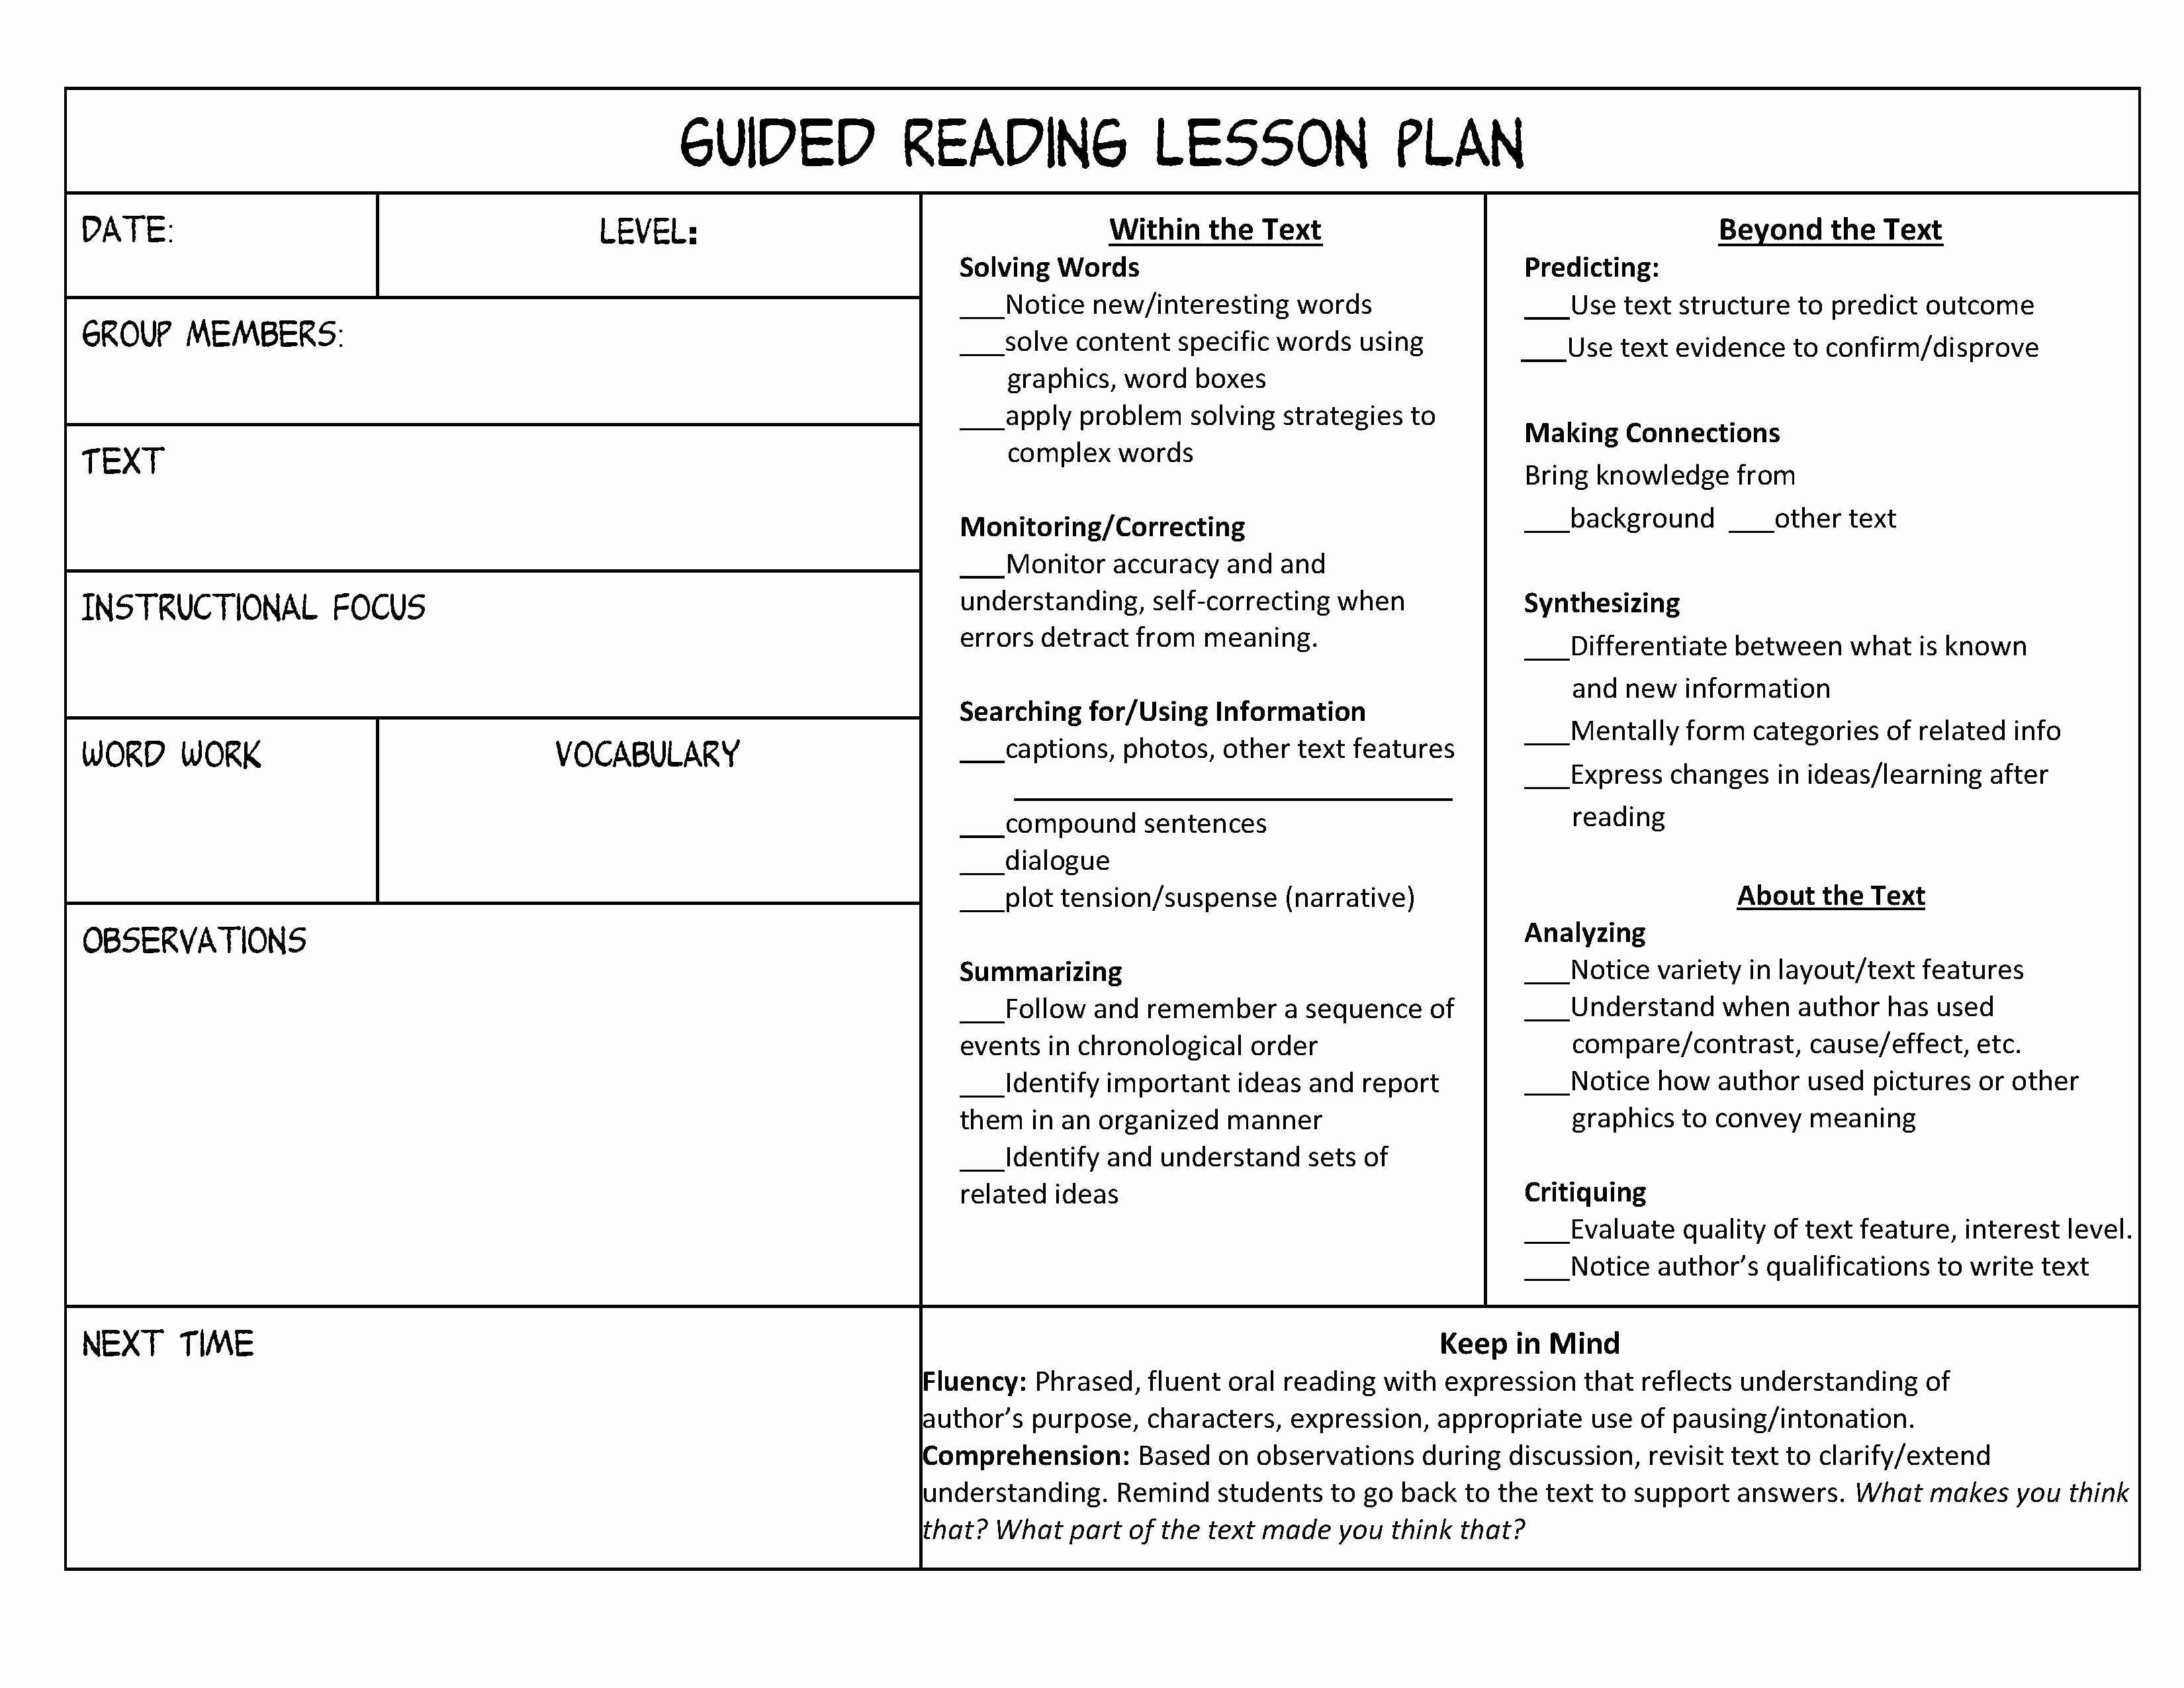 Umd 4 Year Plan Template New Lesson Plan format